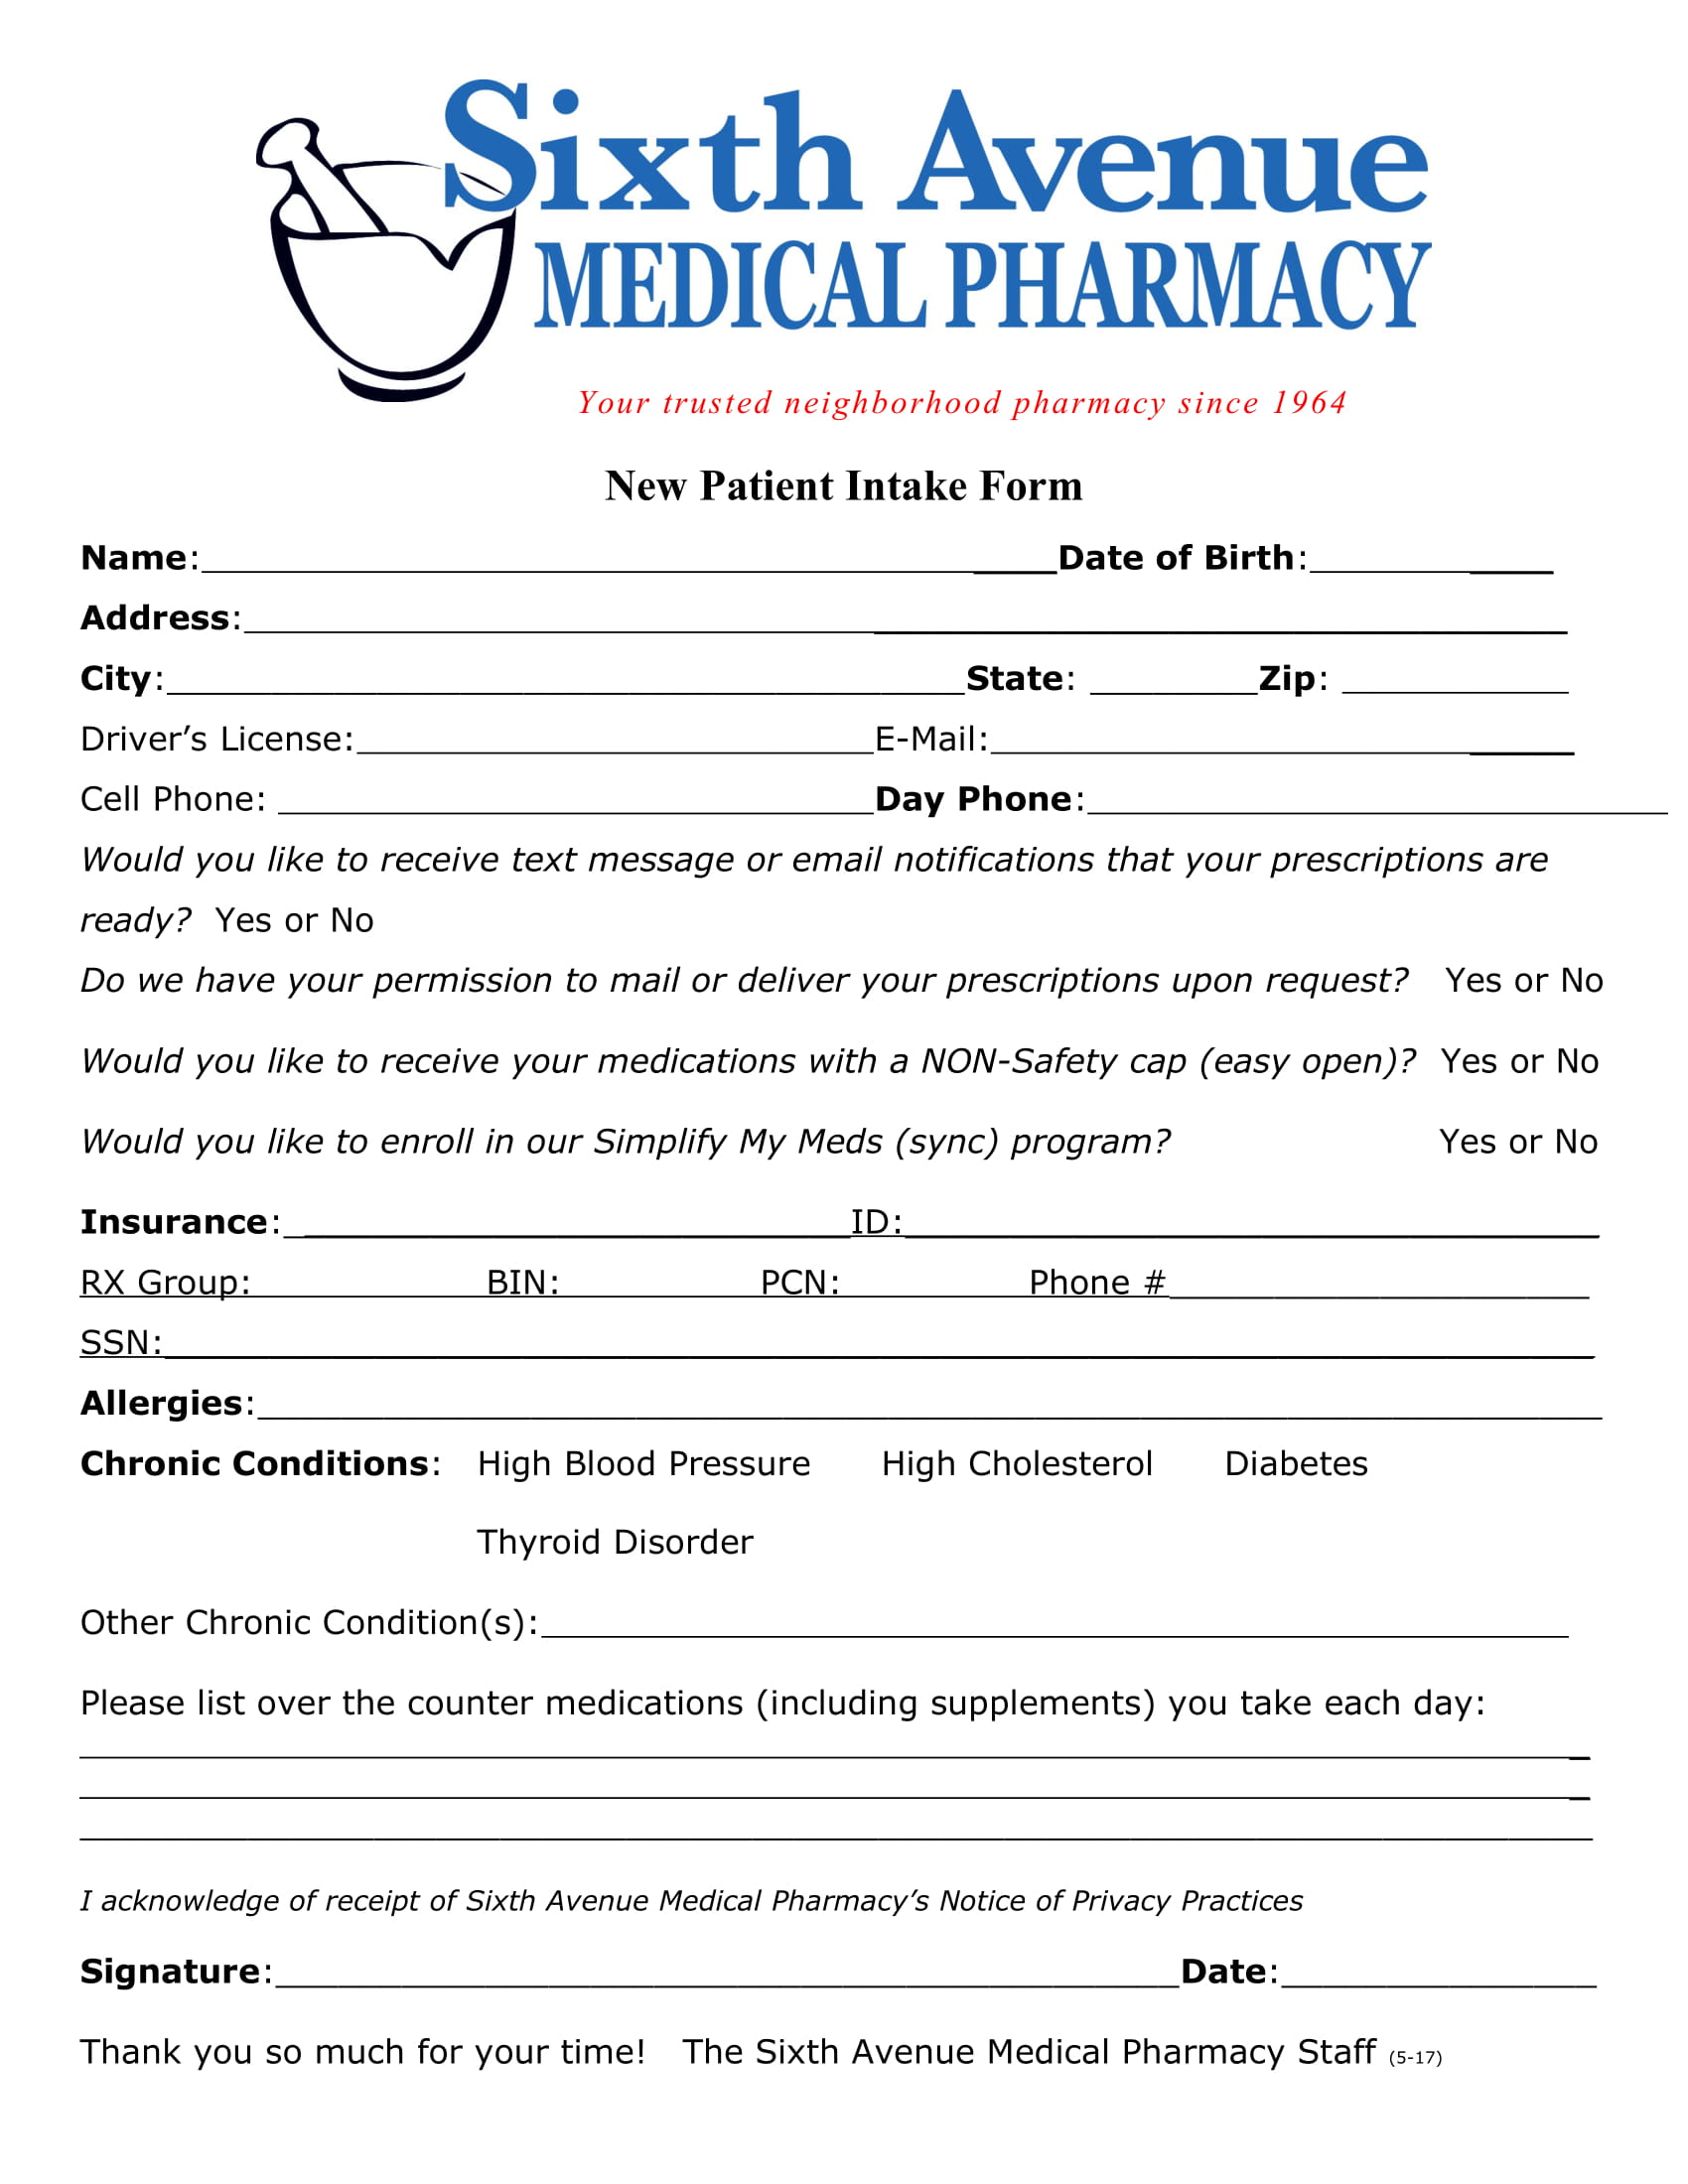 medical pharmacy new patient intake form 1